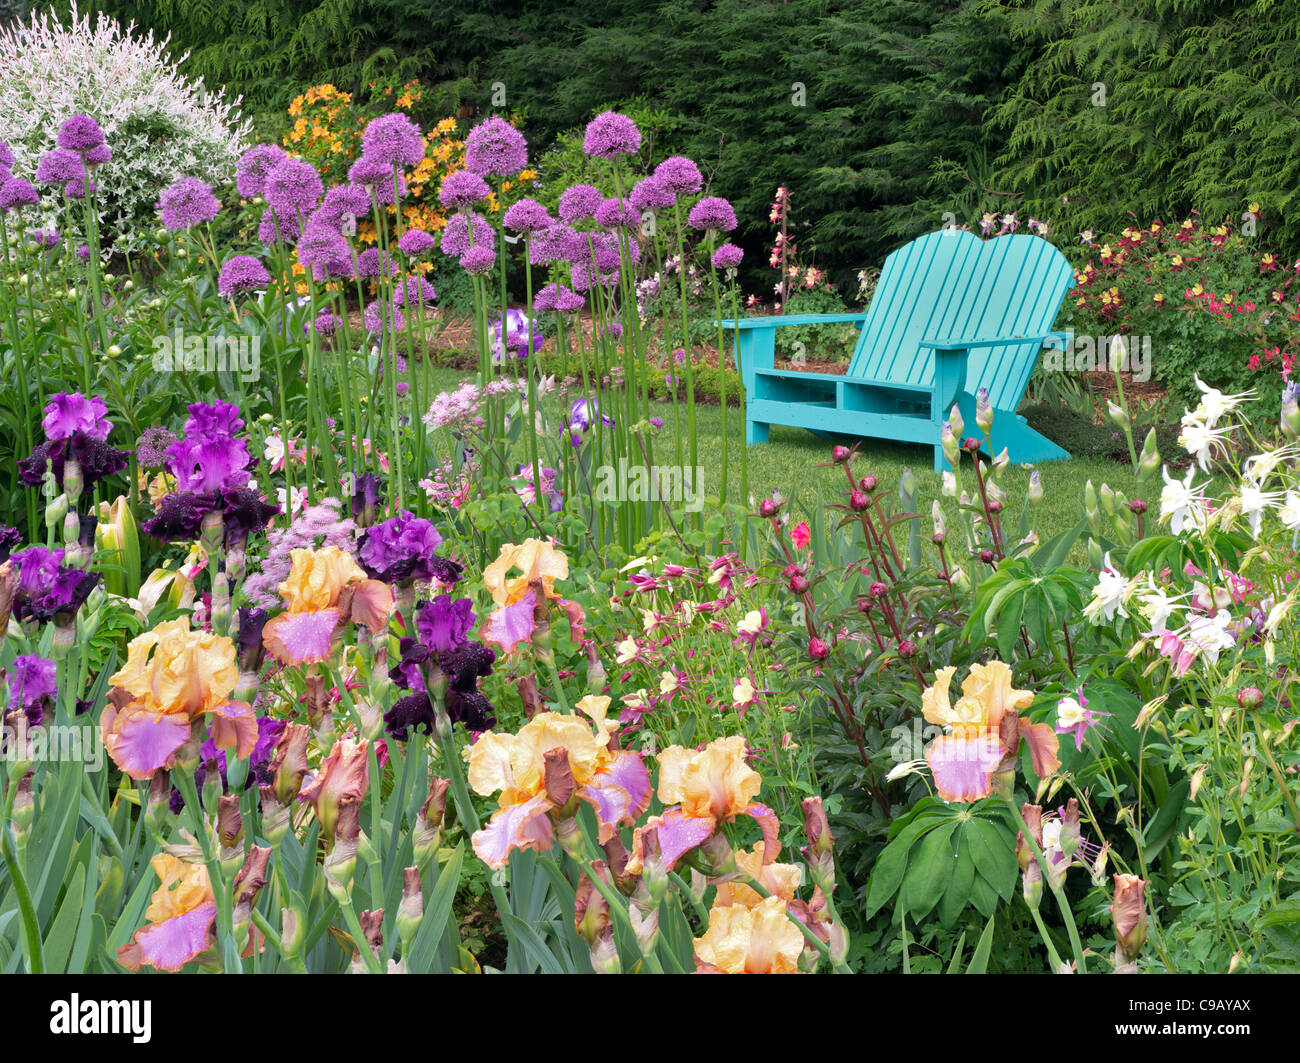 Lovely Iris And Other Flowering Plants With Chair At Schriners Iris Garden. Oregon    Stock Image